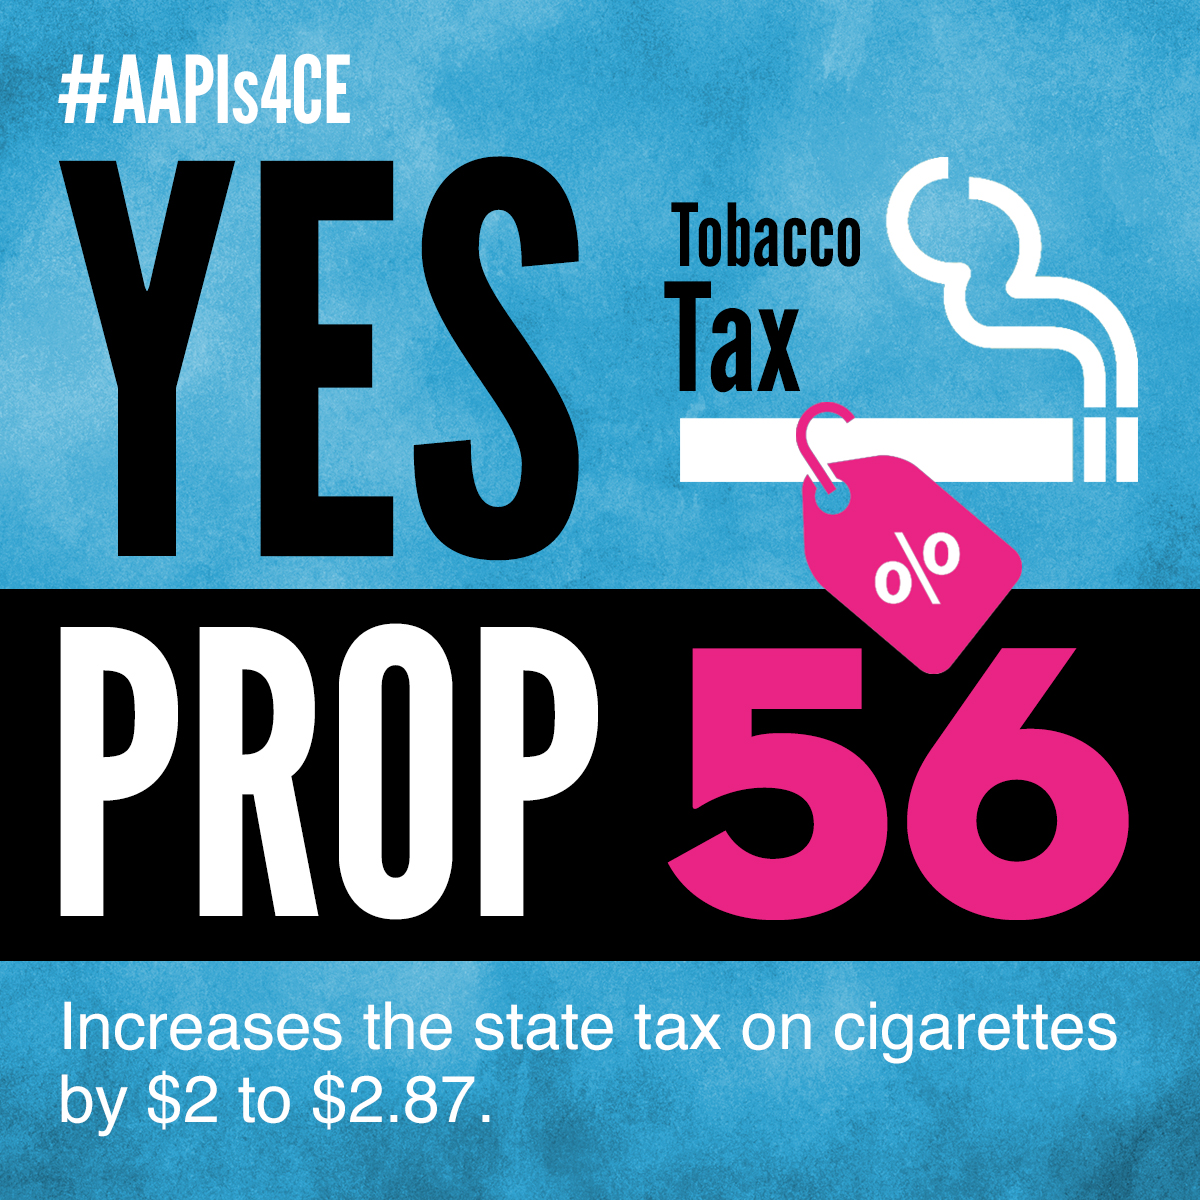 Yes on Proposition 56: Tobacco Tax